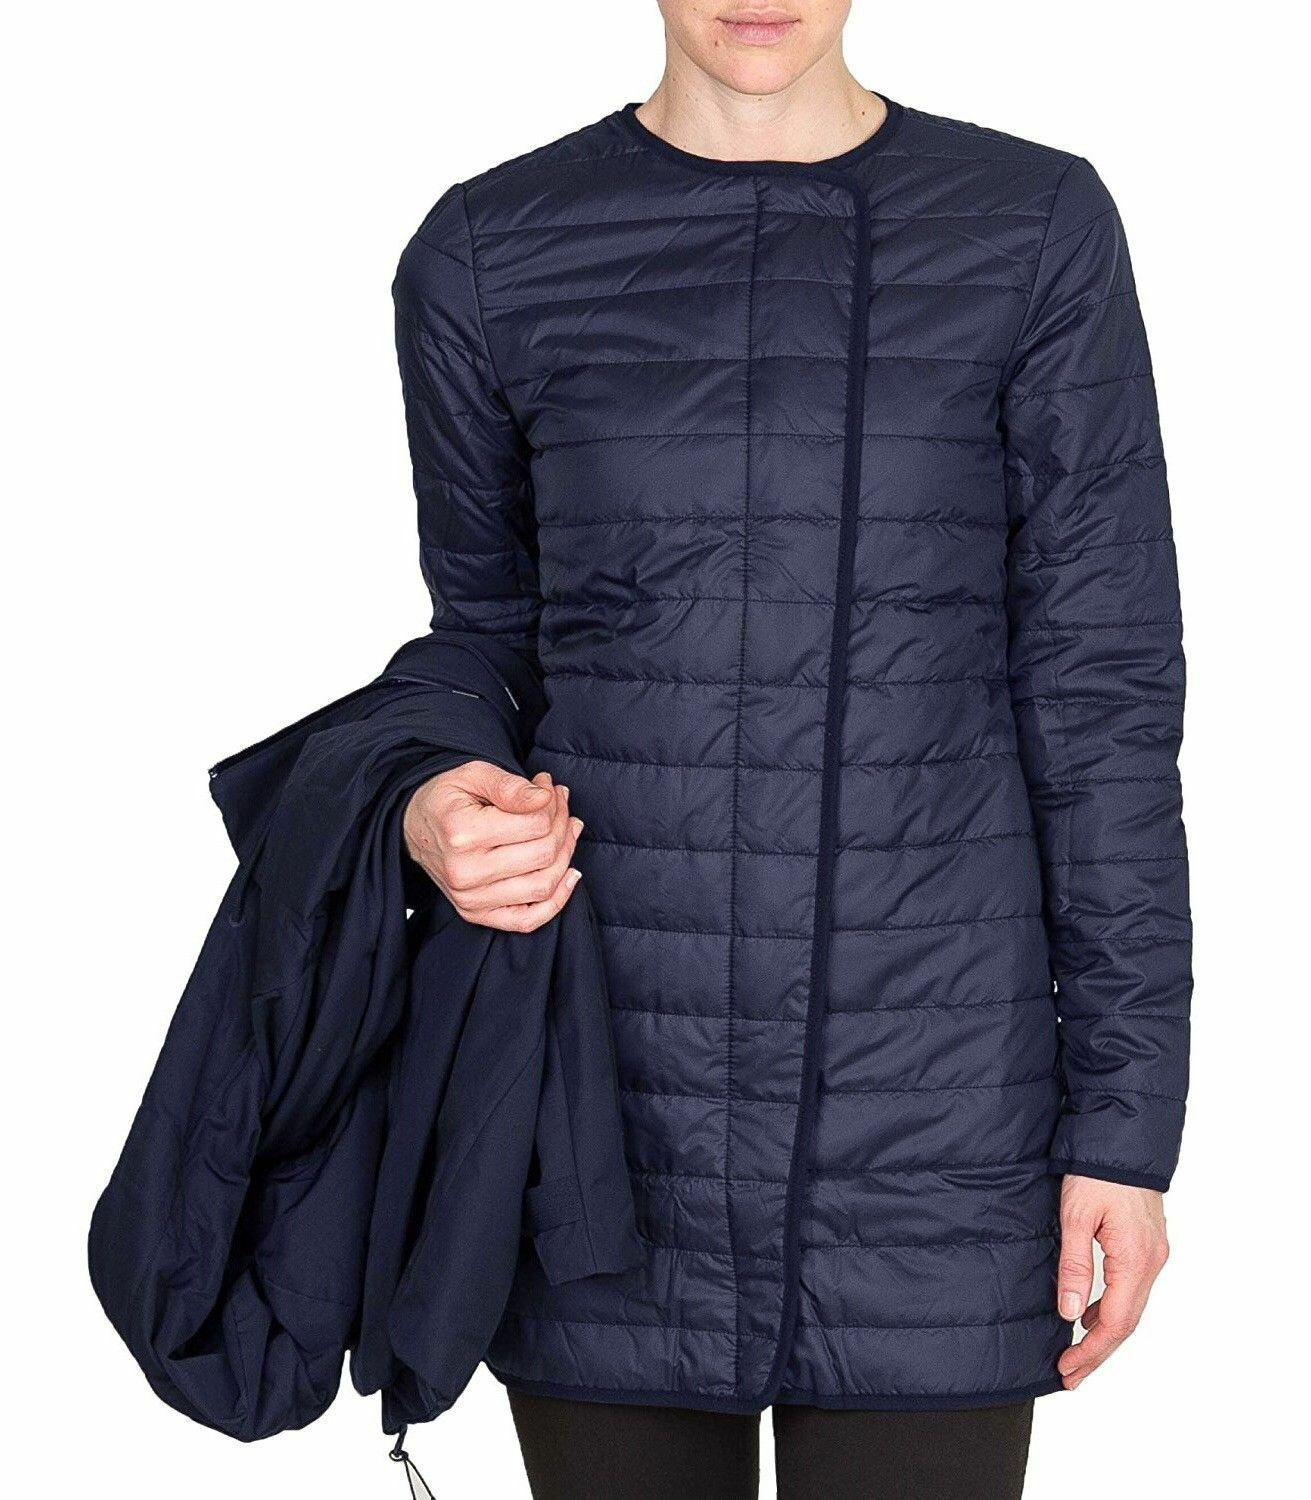 Nike Womens 3 in 1 Short Navy Parka Jacket Coat 683932 410 Size XL ...